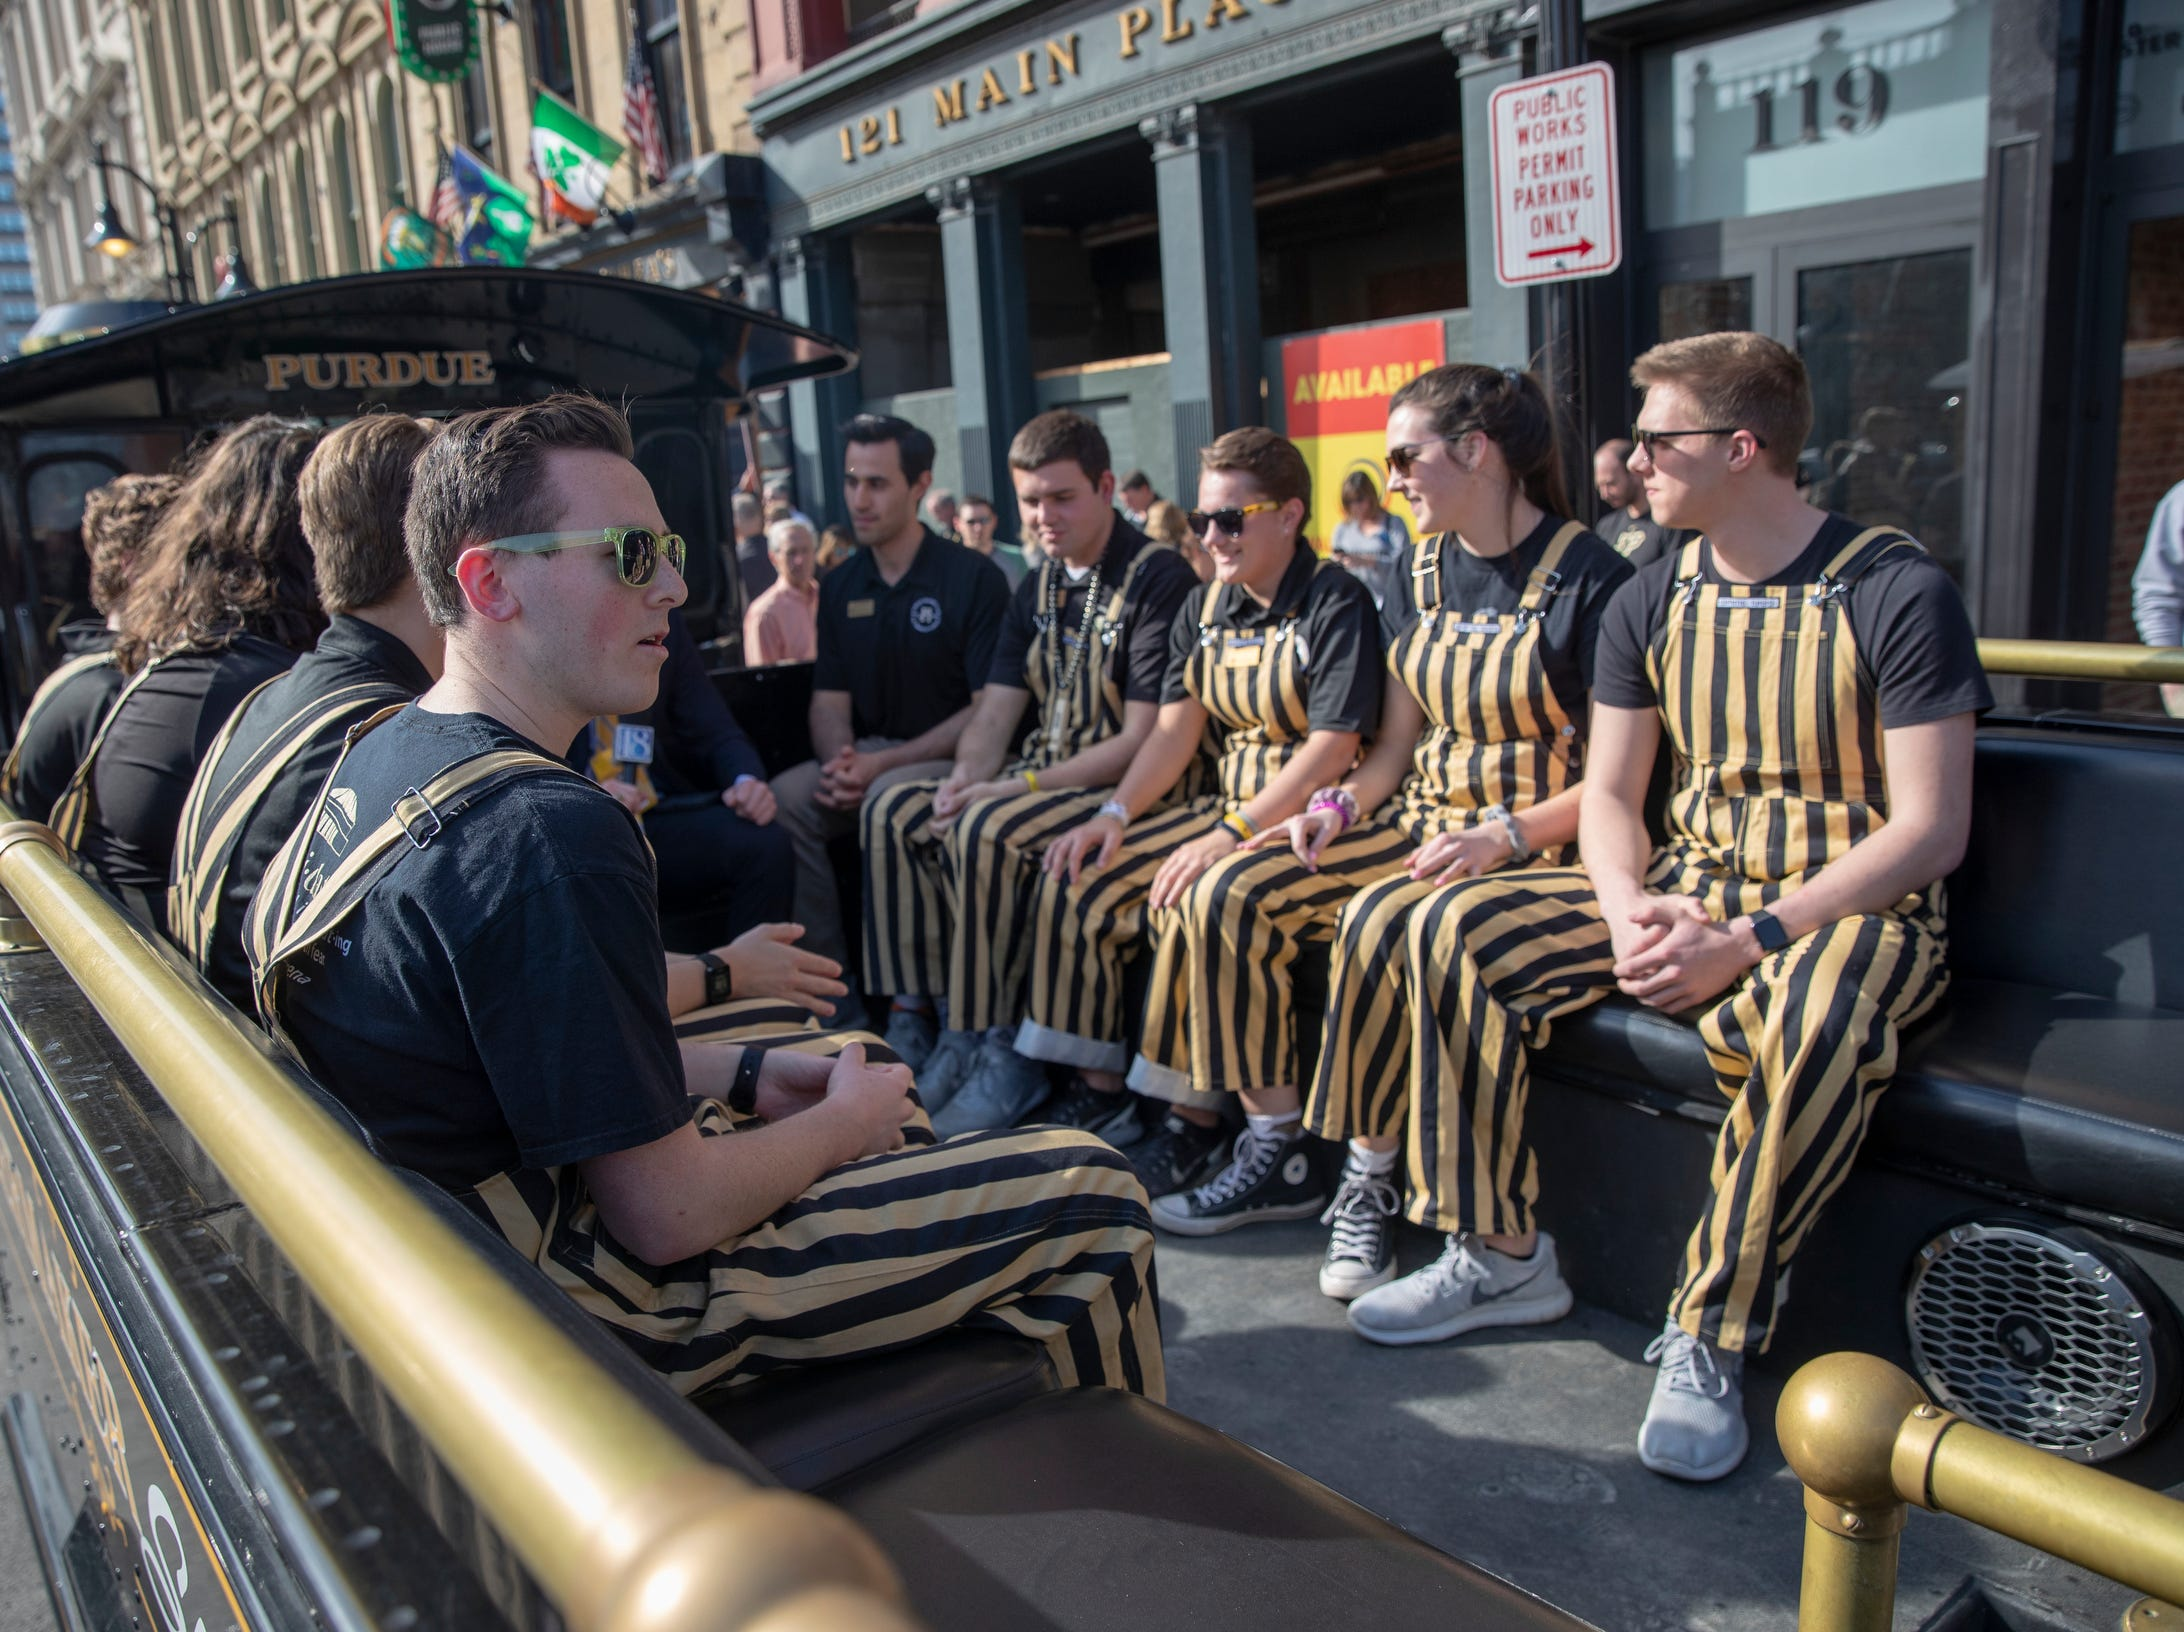 Purdue students sit in the Boilermaker Special, the mascot of Purdue, sits on the street near the NCAA Division 1 Men's Basketball 'Sweet Sixteen' game site, KFC Yum Center, Louisville, Thursday, March 28, 2019.